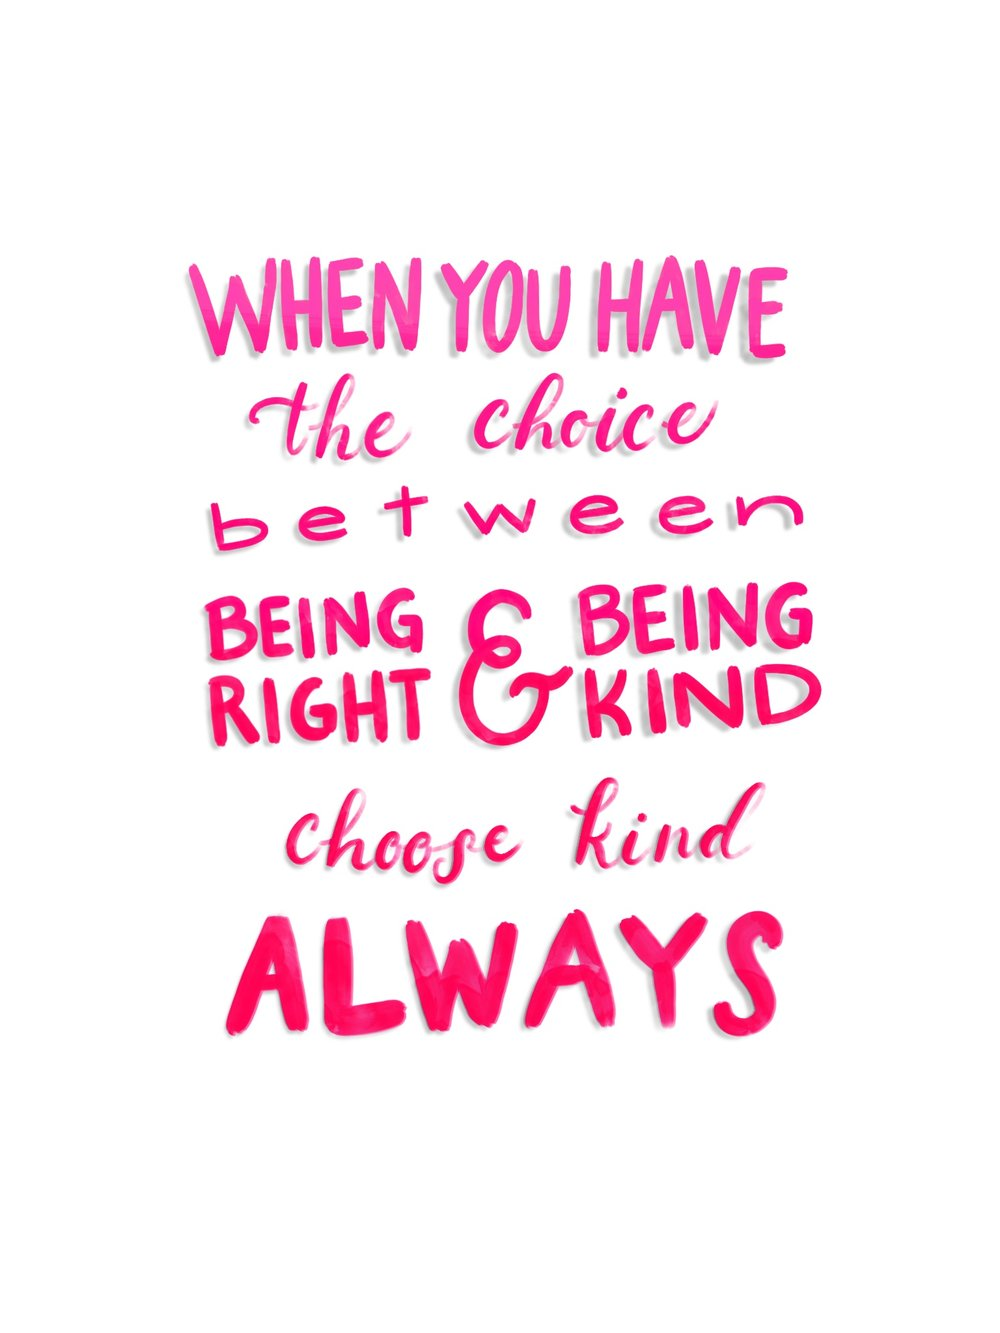 kindness-happy-life-quotes-briana-christine-ipad-lettering